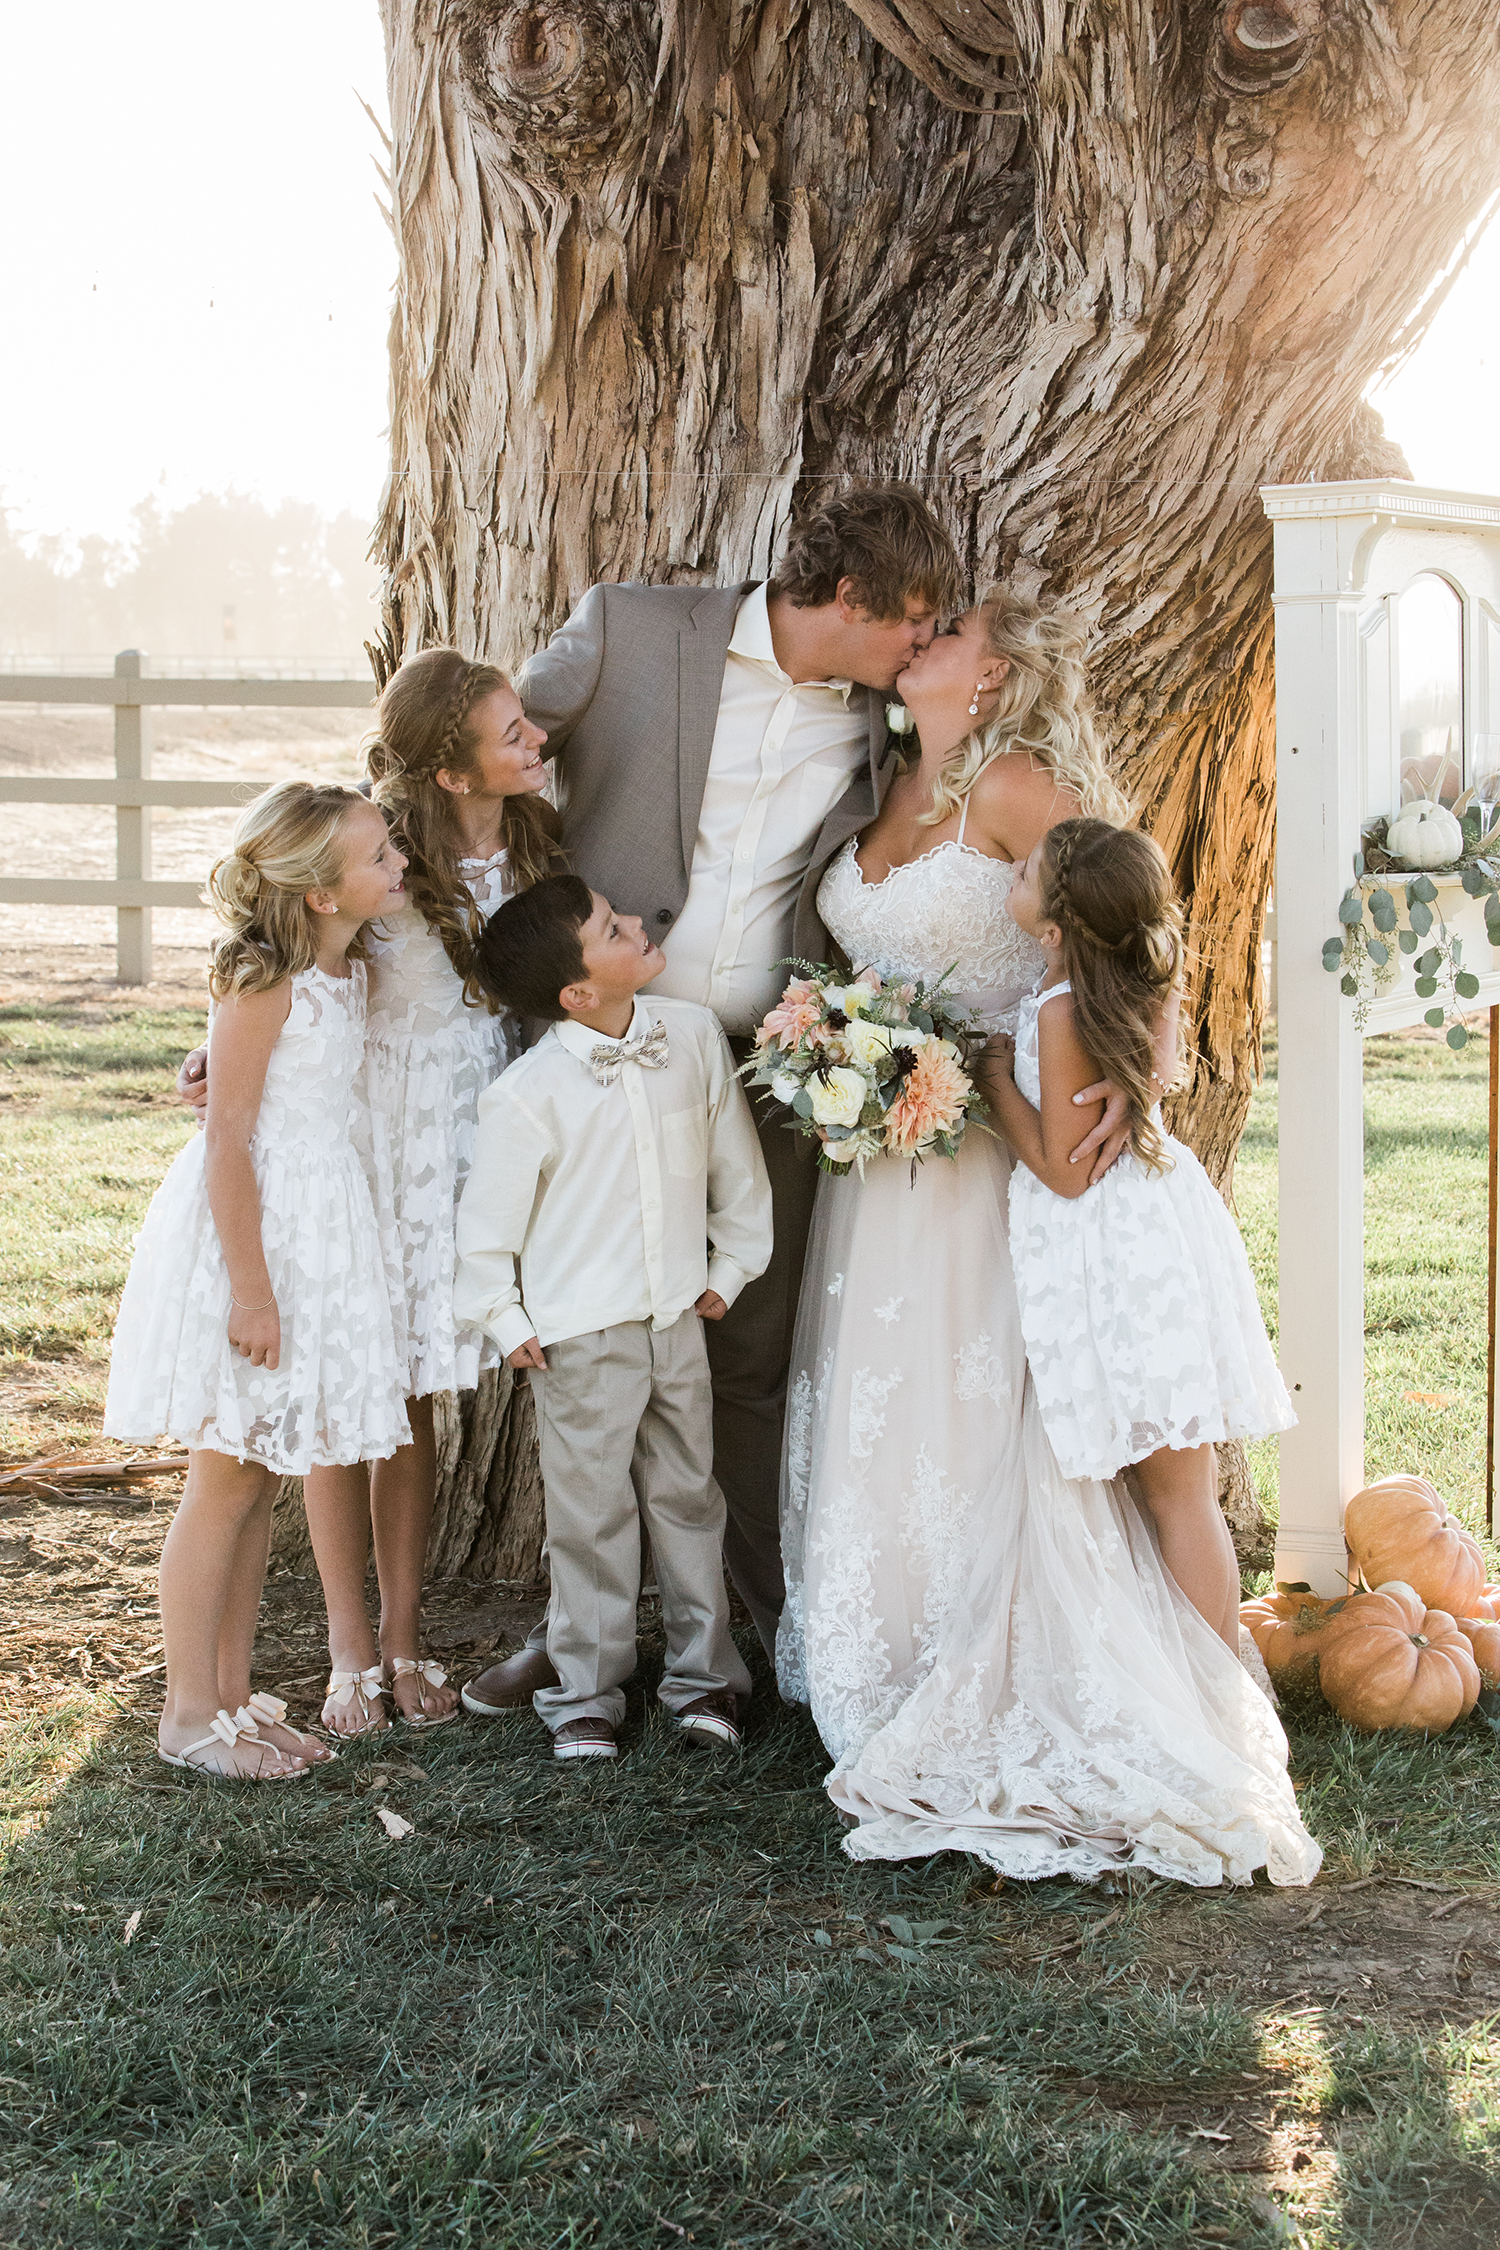 Dena_Rooney_Wedding_Photographer_Birchcreek_Ranch_Livermore_008.jpg